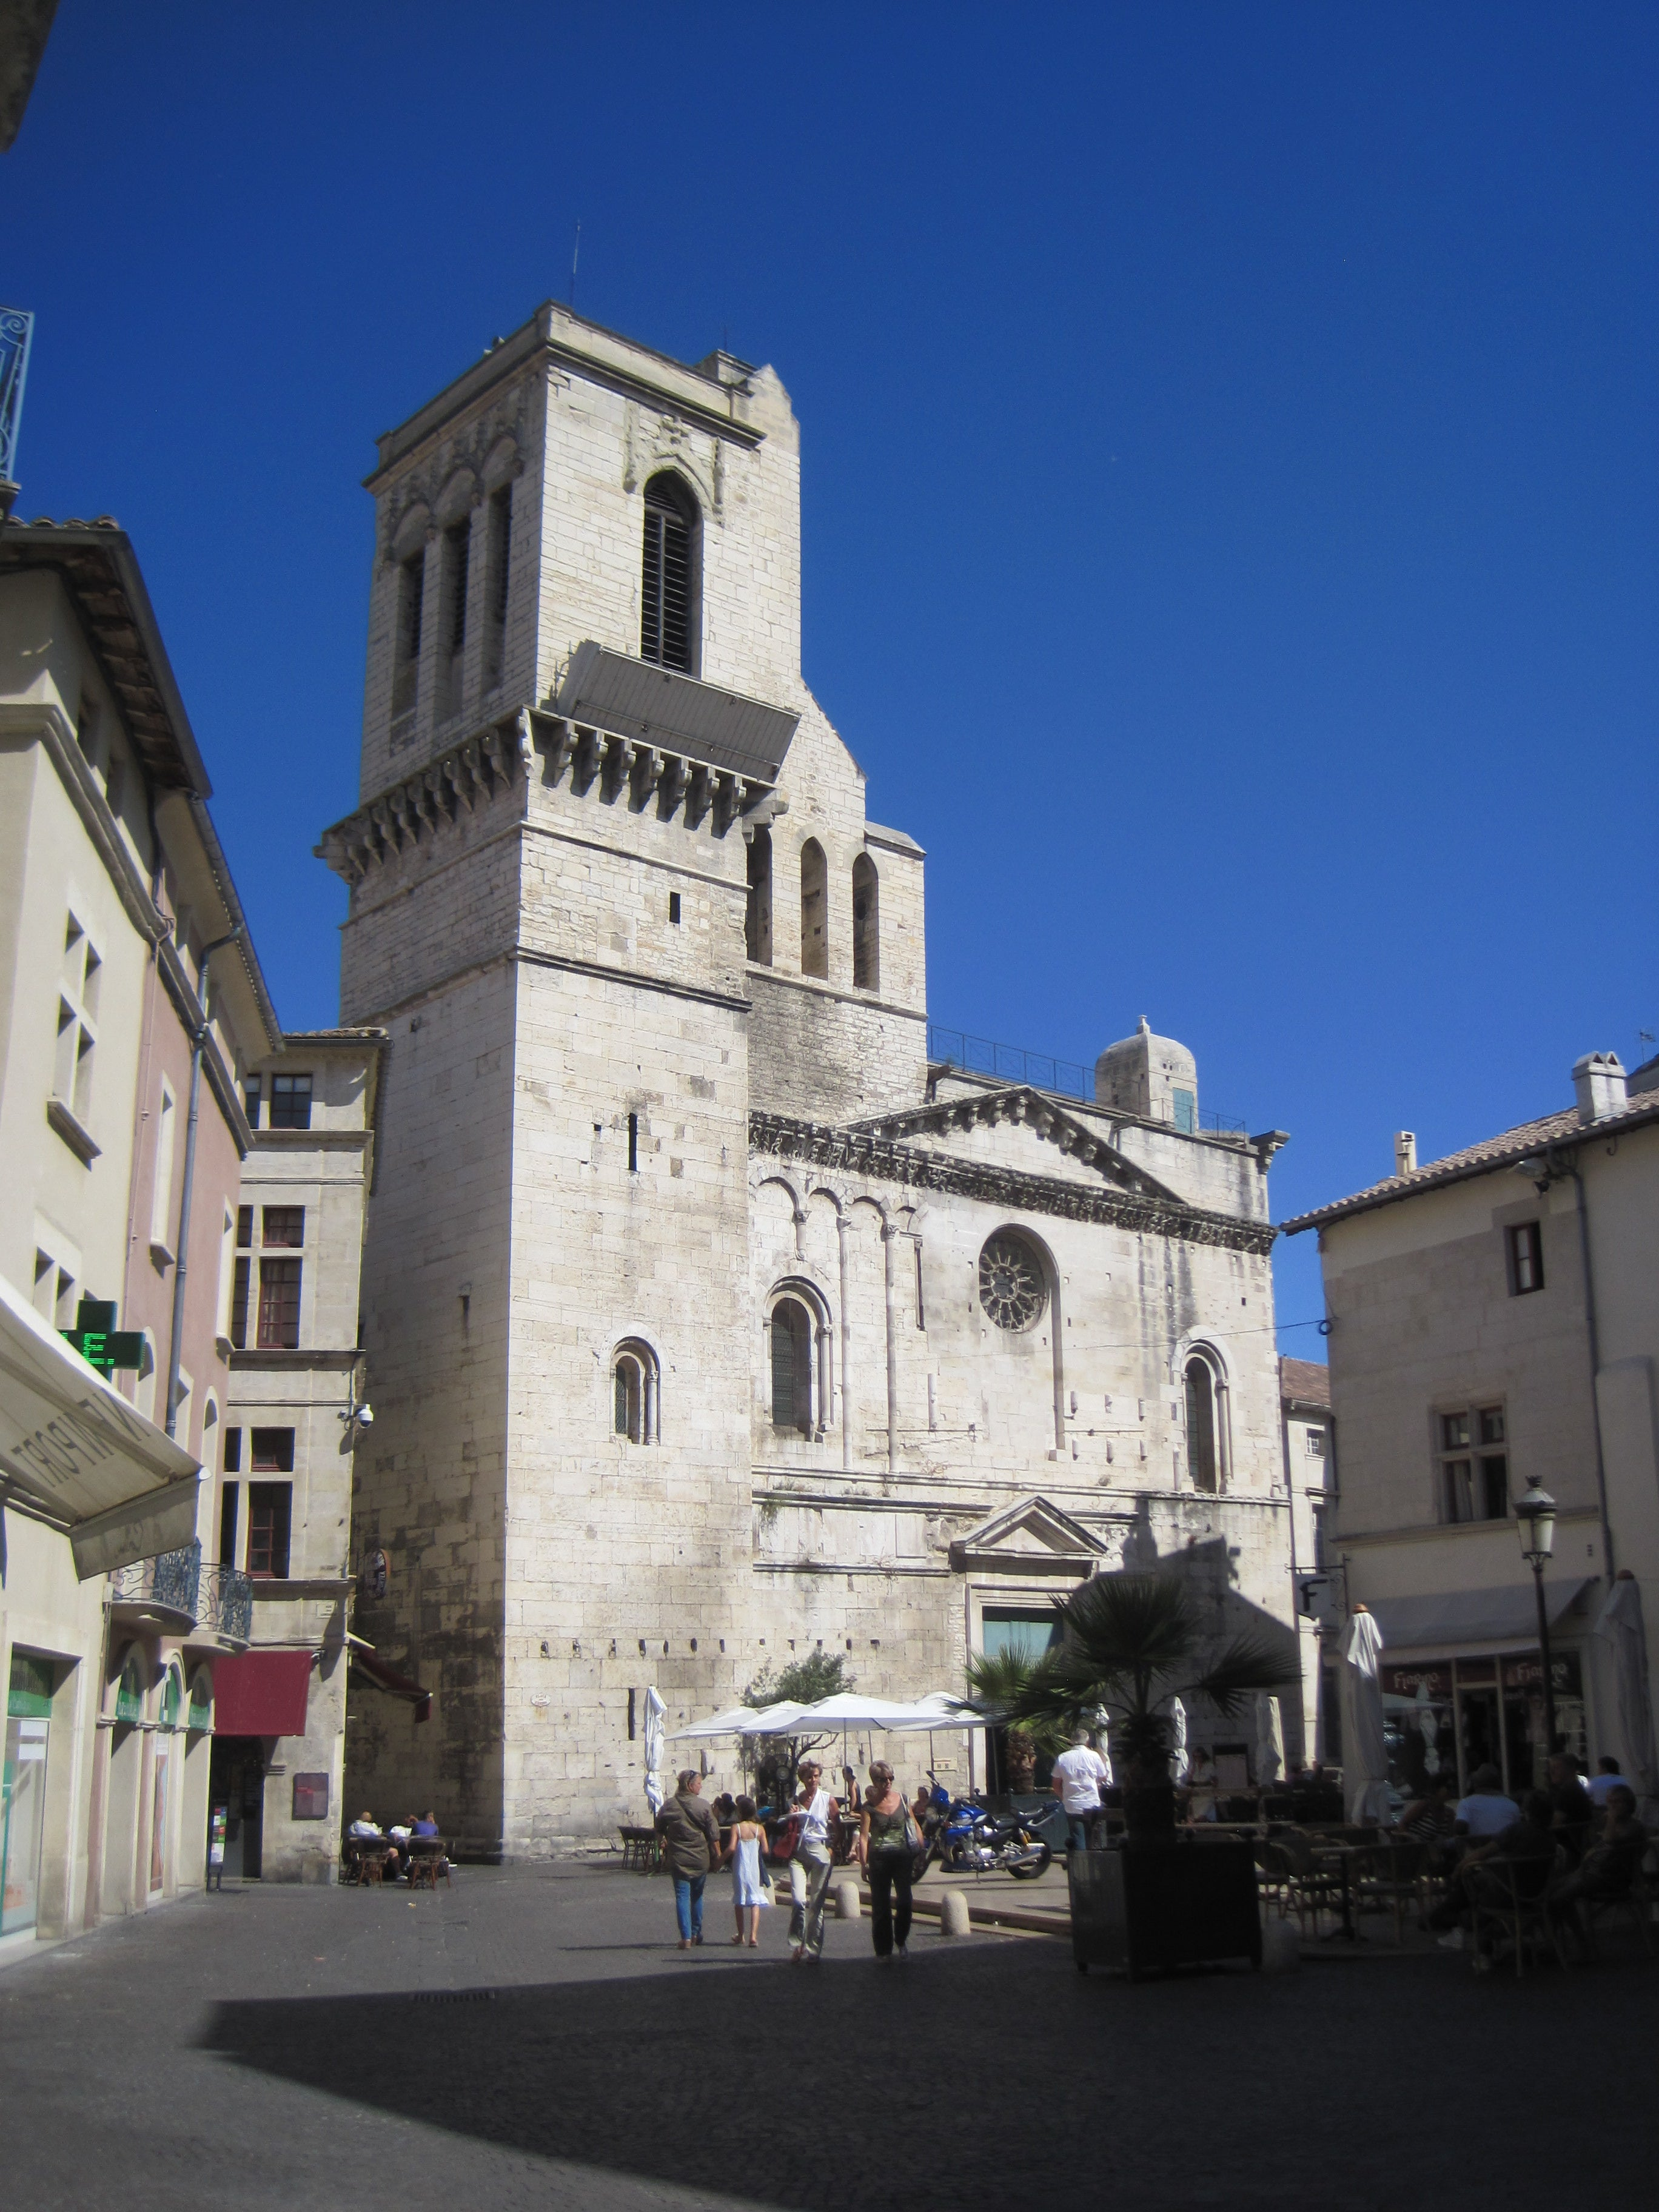 Cathedral of Saint Castor